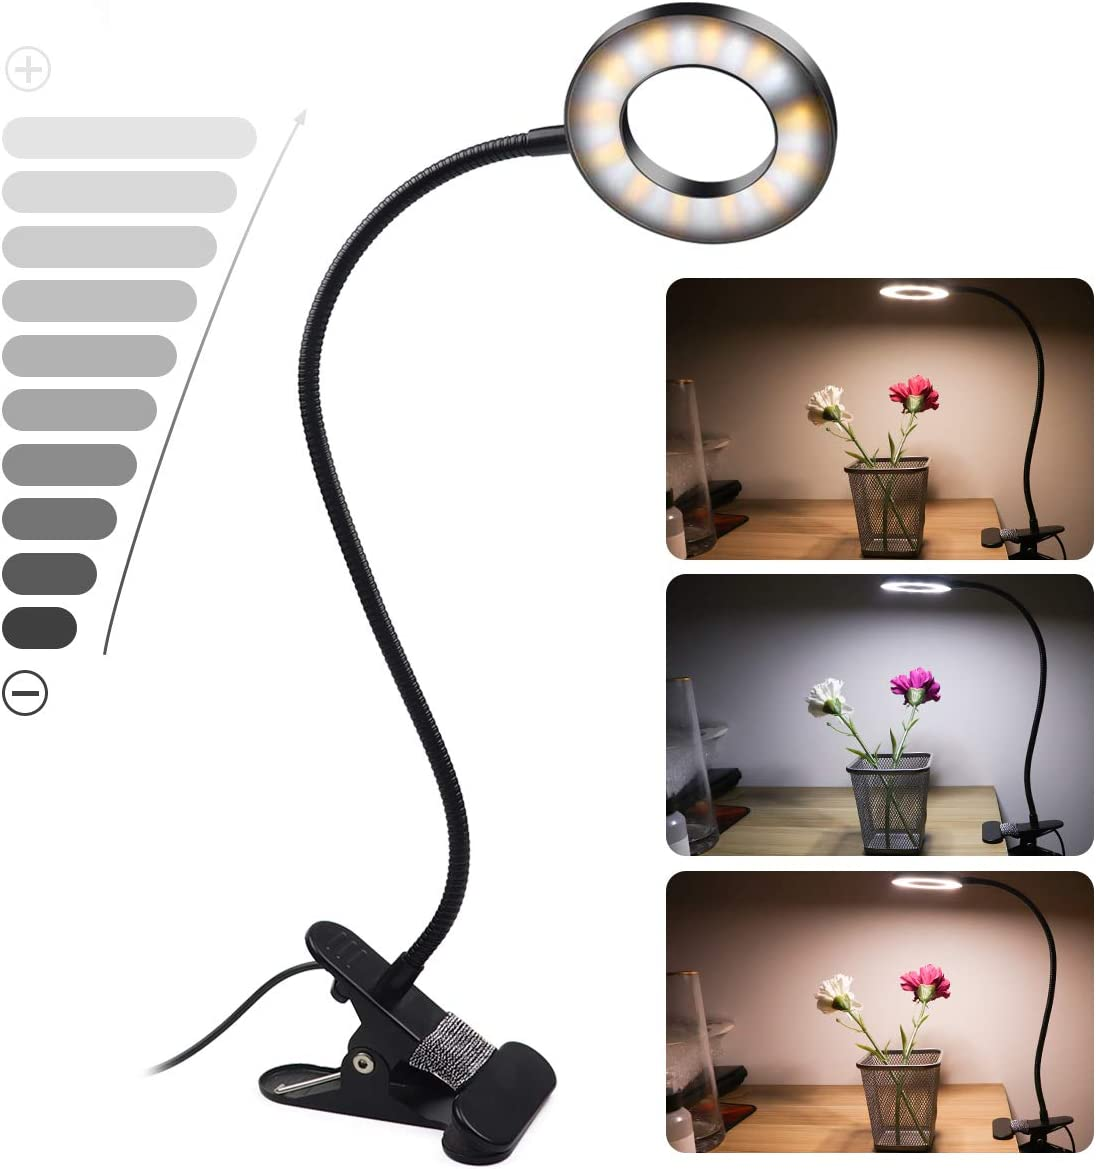 CLOOOUDS Clip On Light Lamp Fixed price Fashion for sale Desk LED L Reading USB